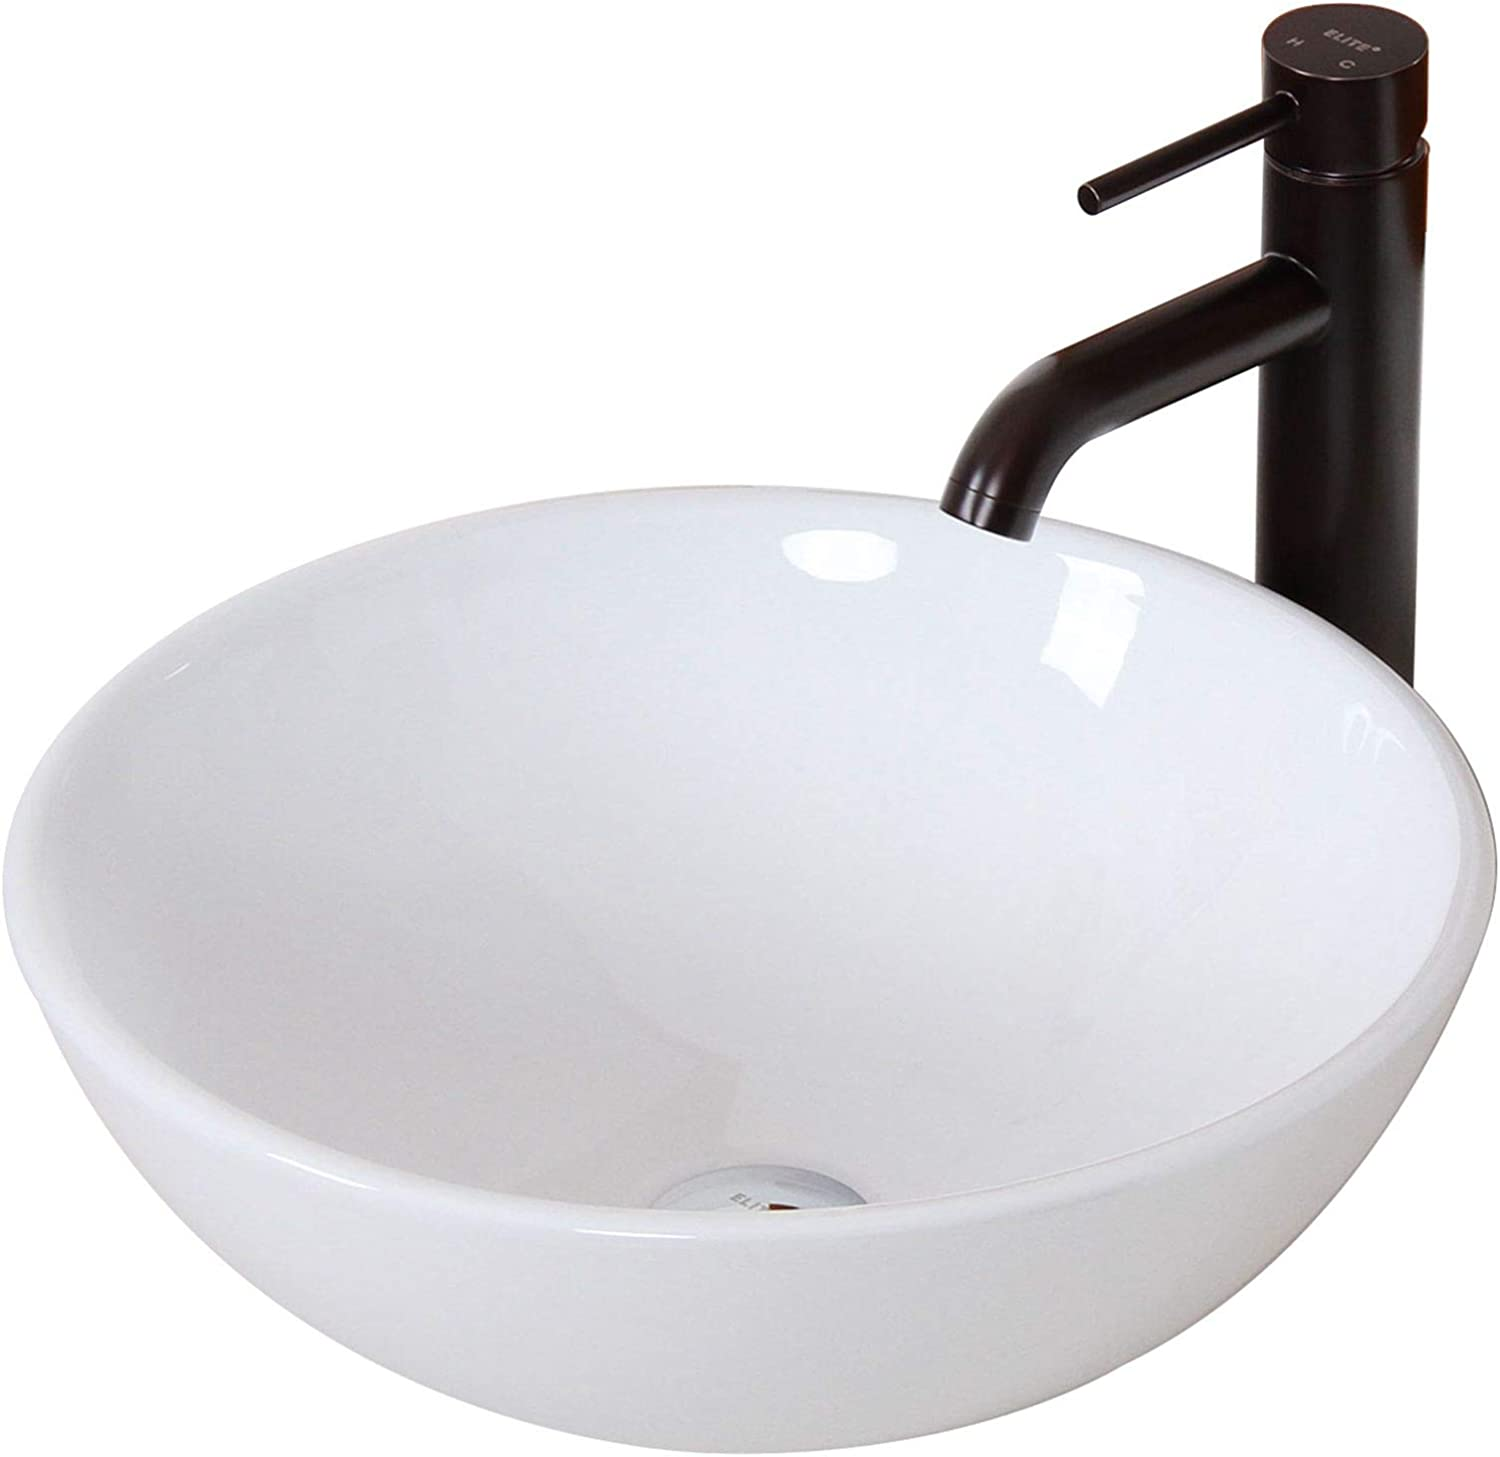 ELITE Bathroom Round White Ceramic Porcelain Vessel Sink Oil Rubbed Bronze Faucet Combo